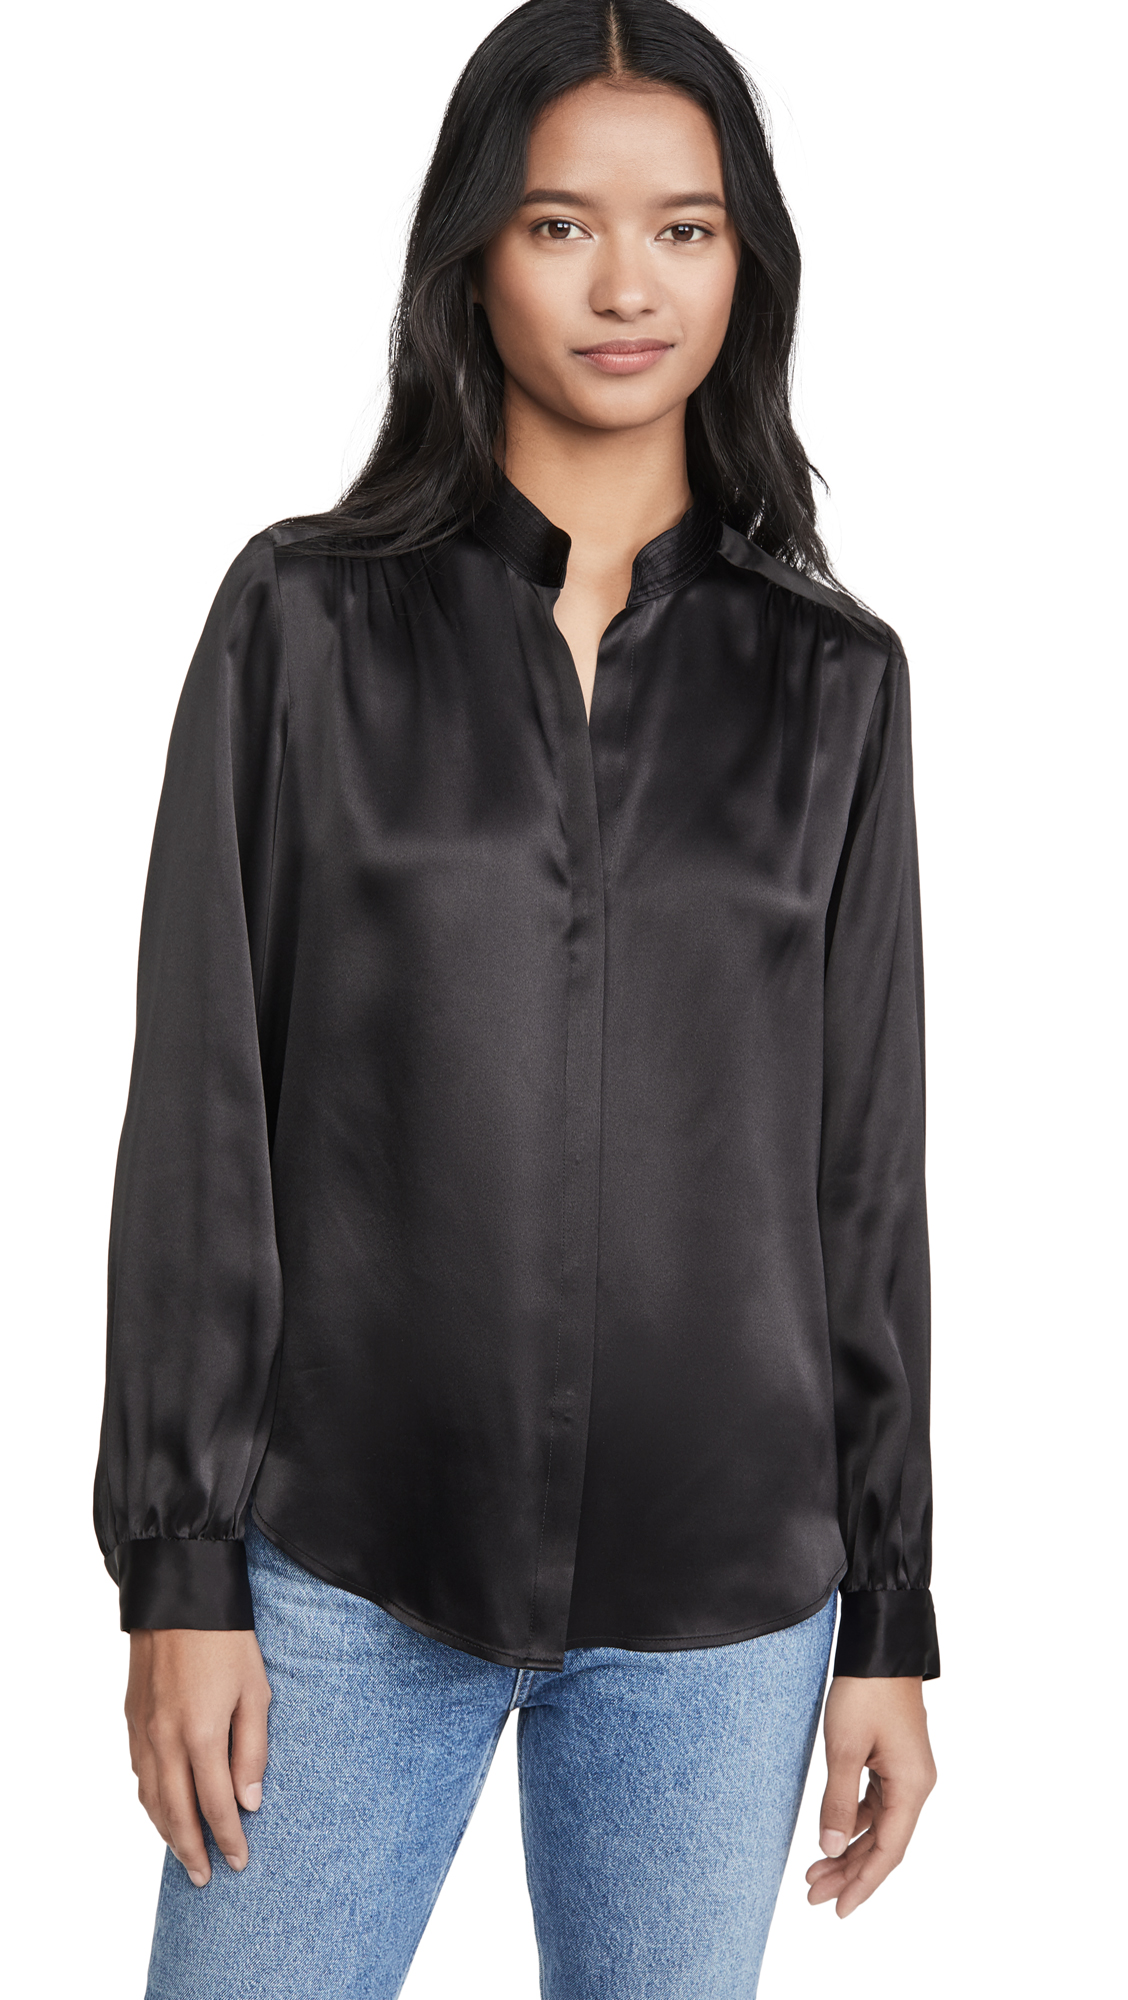 L'AGENCE Bianca Band Collar Blouse - 60% Off Sale